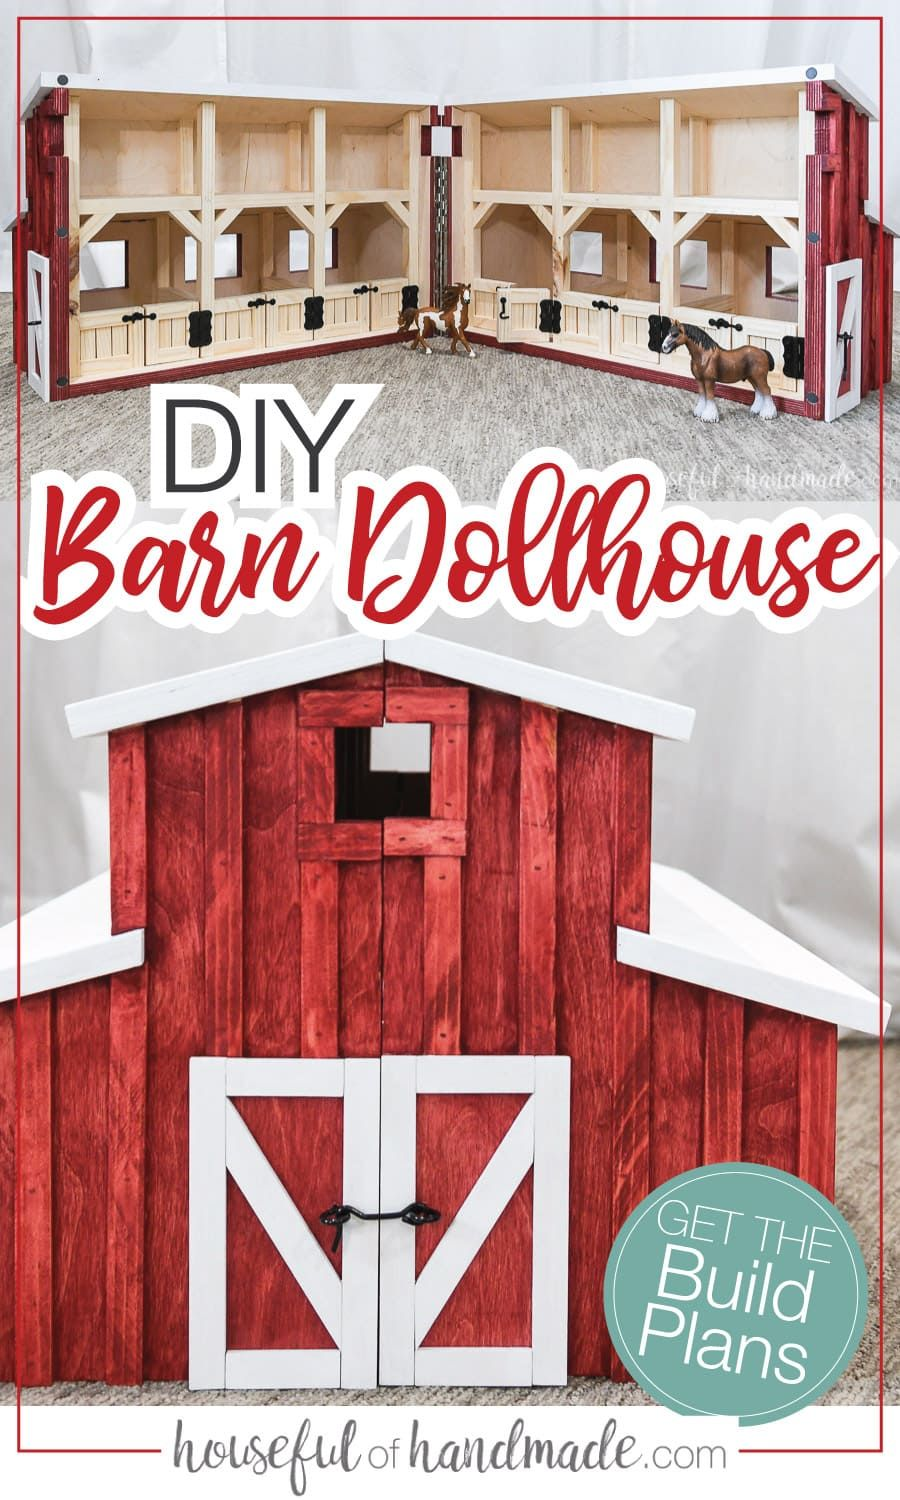 Wooden Toy Barn Build Plans